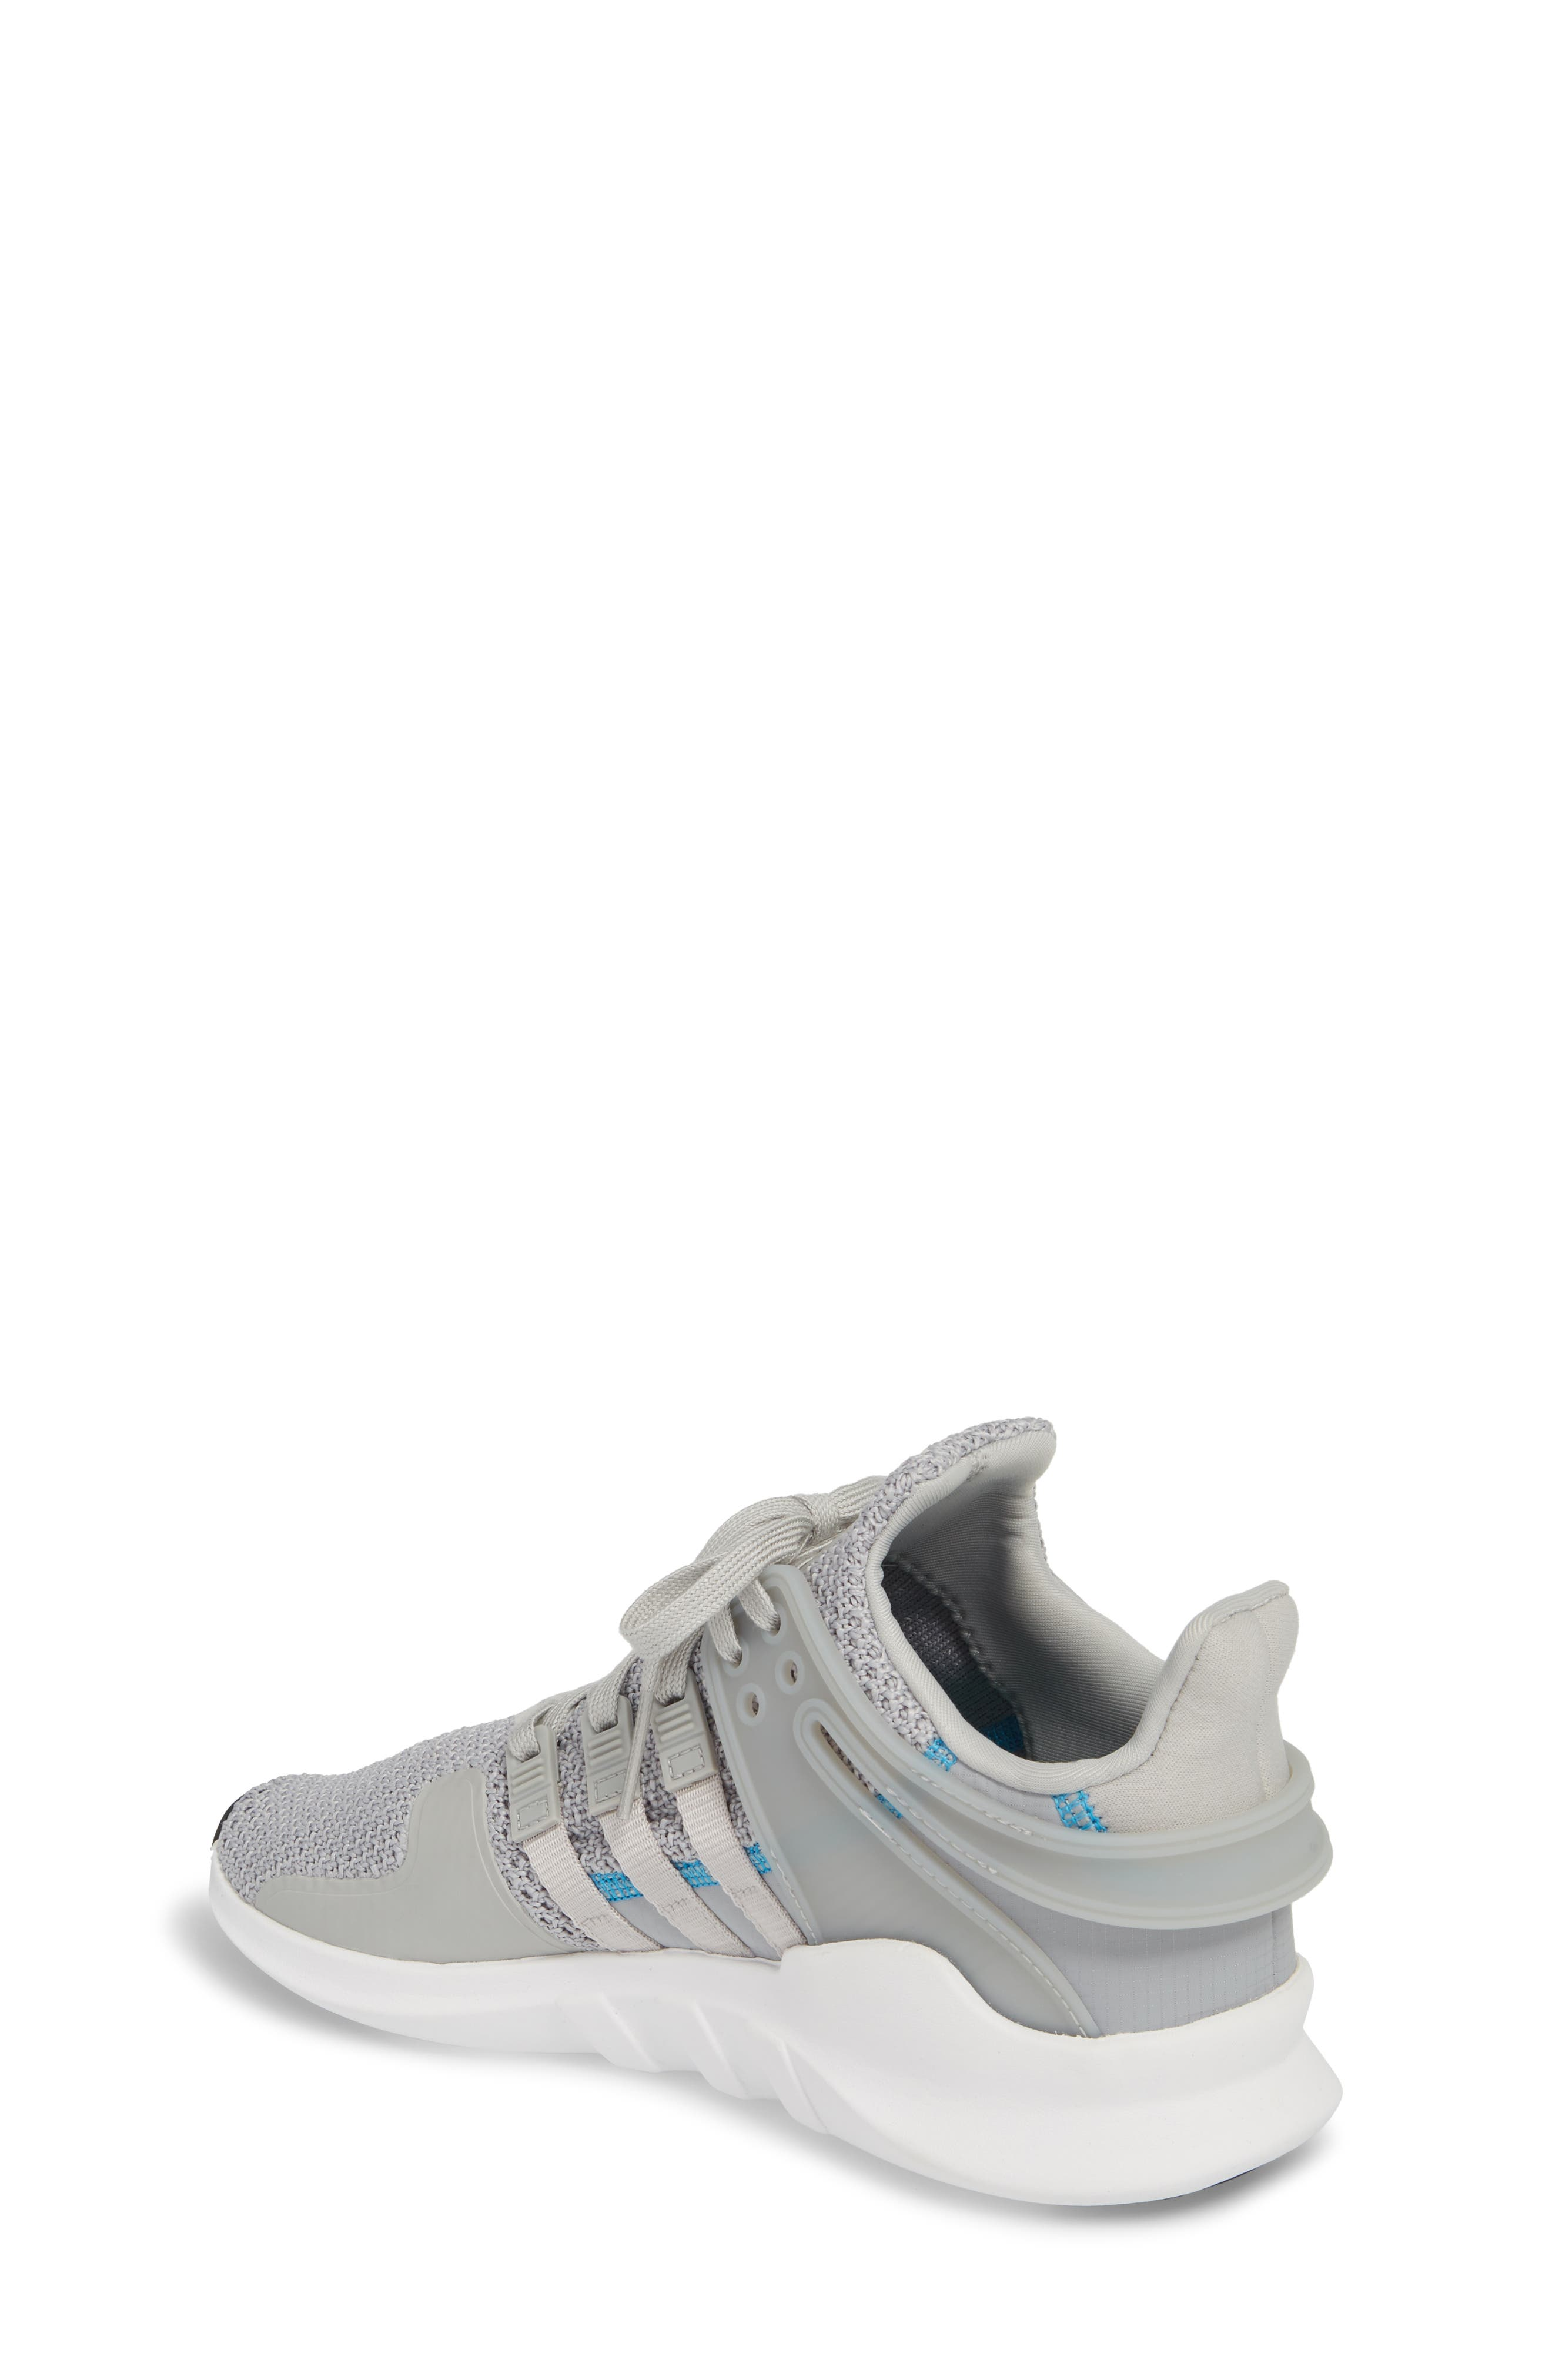 EQT Support Adv Sneaker,                             Alternate thumbnail 2, color,                             Grey / Grey / White